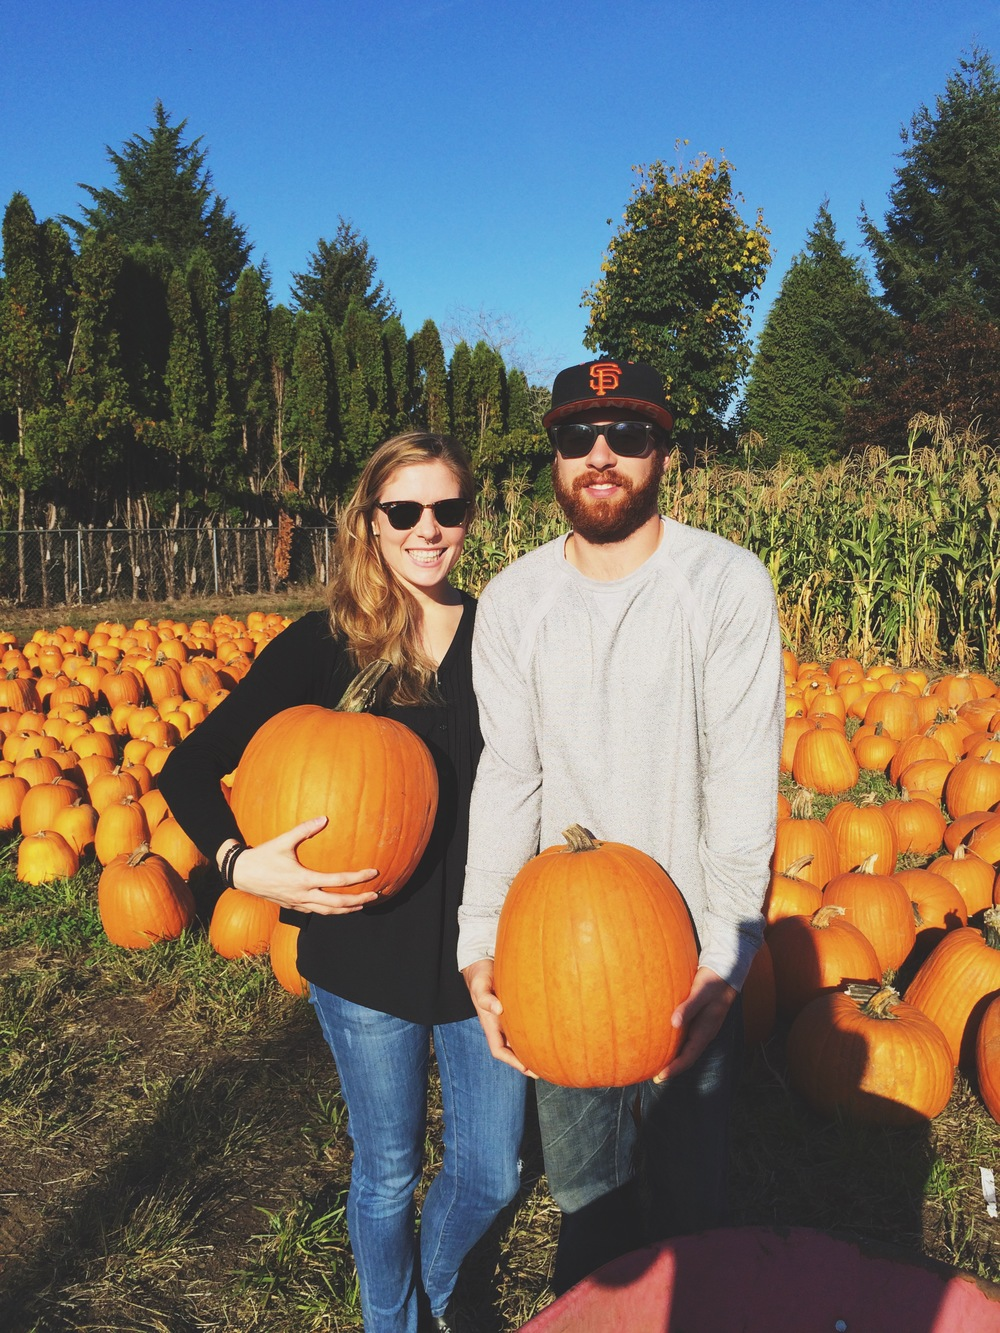 Obligatory pumpkin patch photo